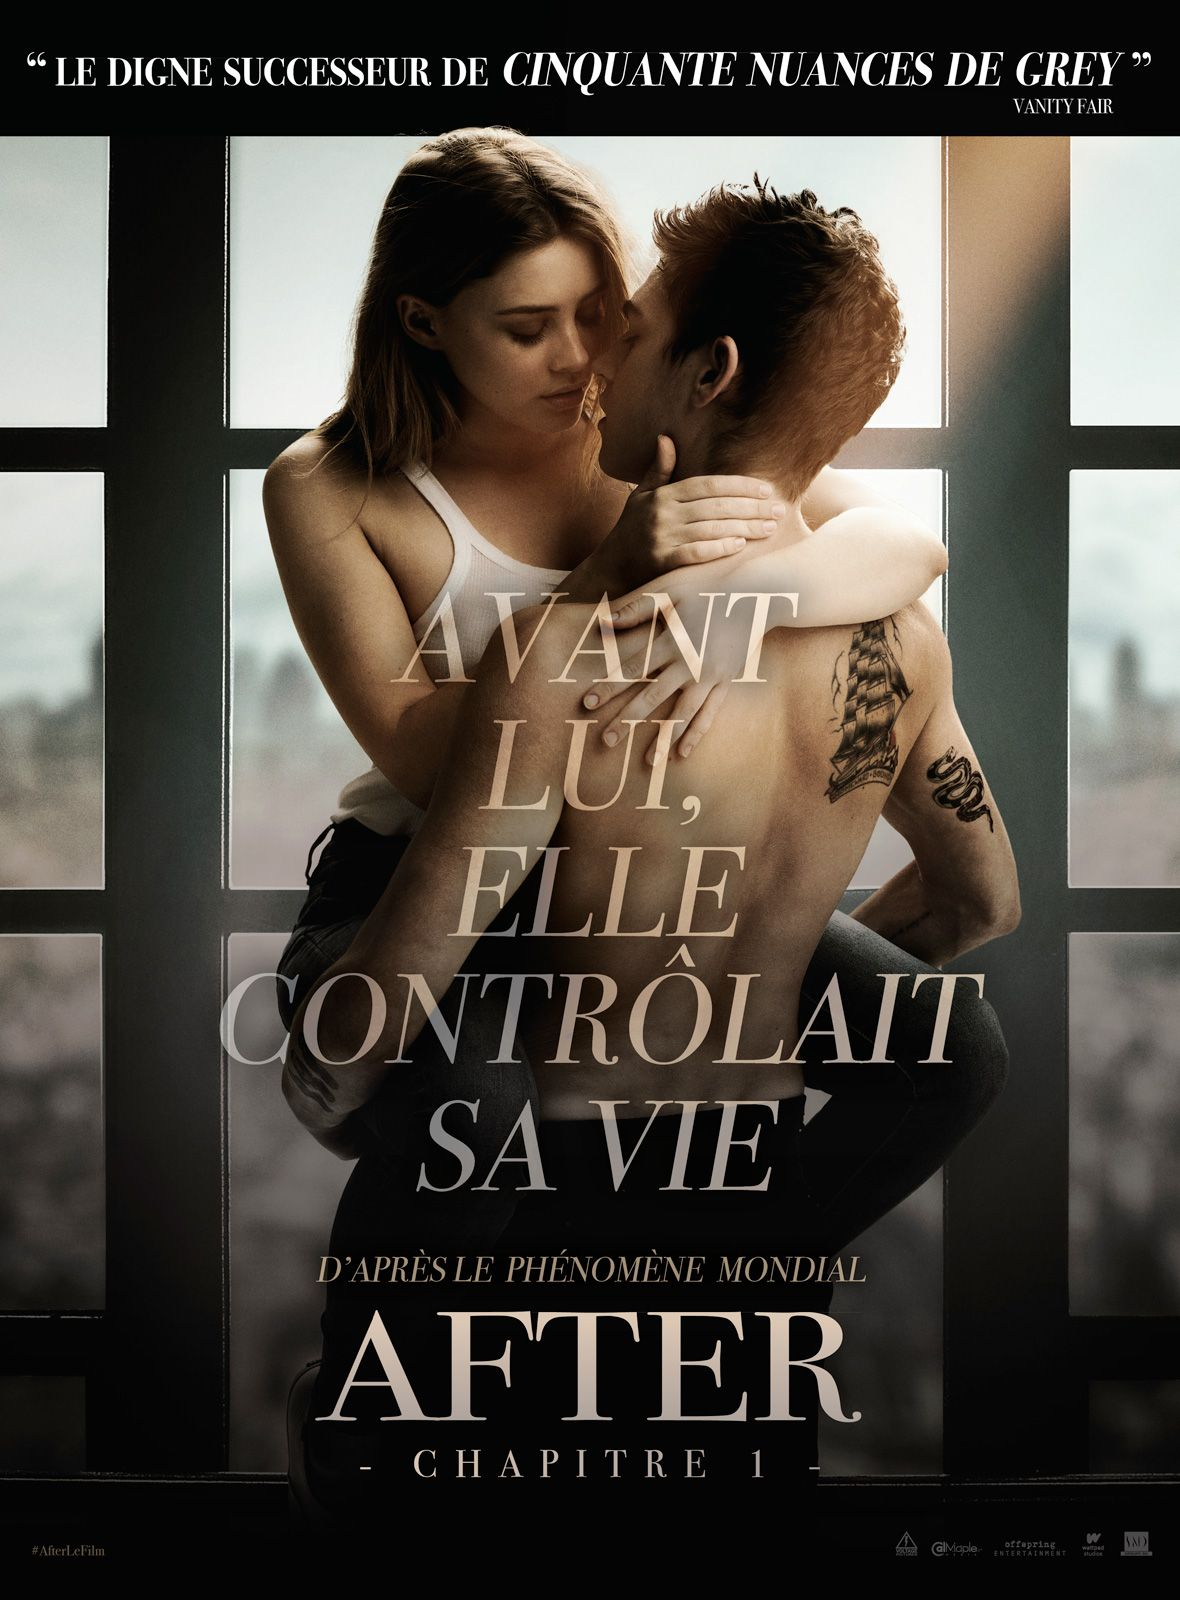 After new poster from france